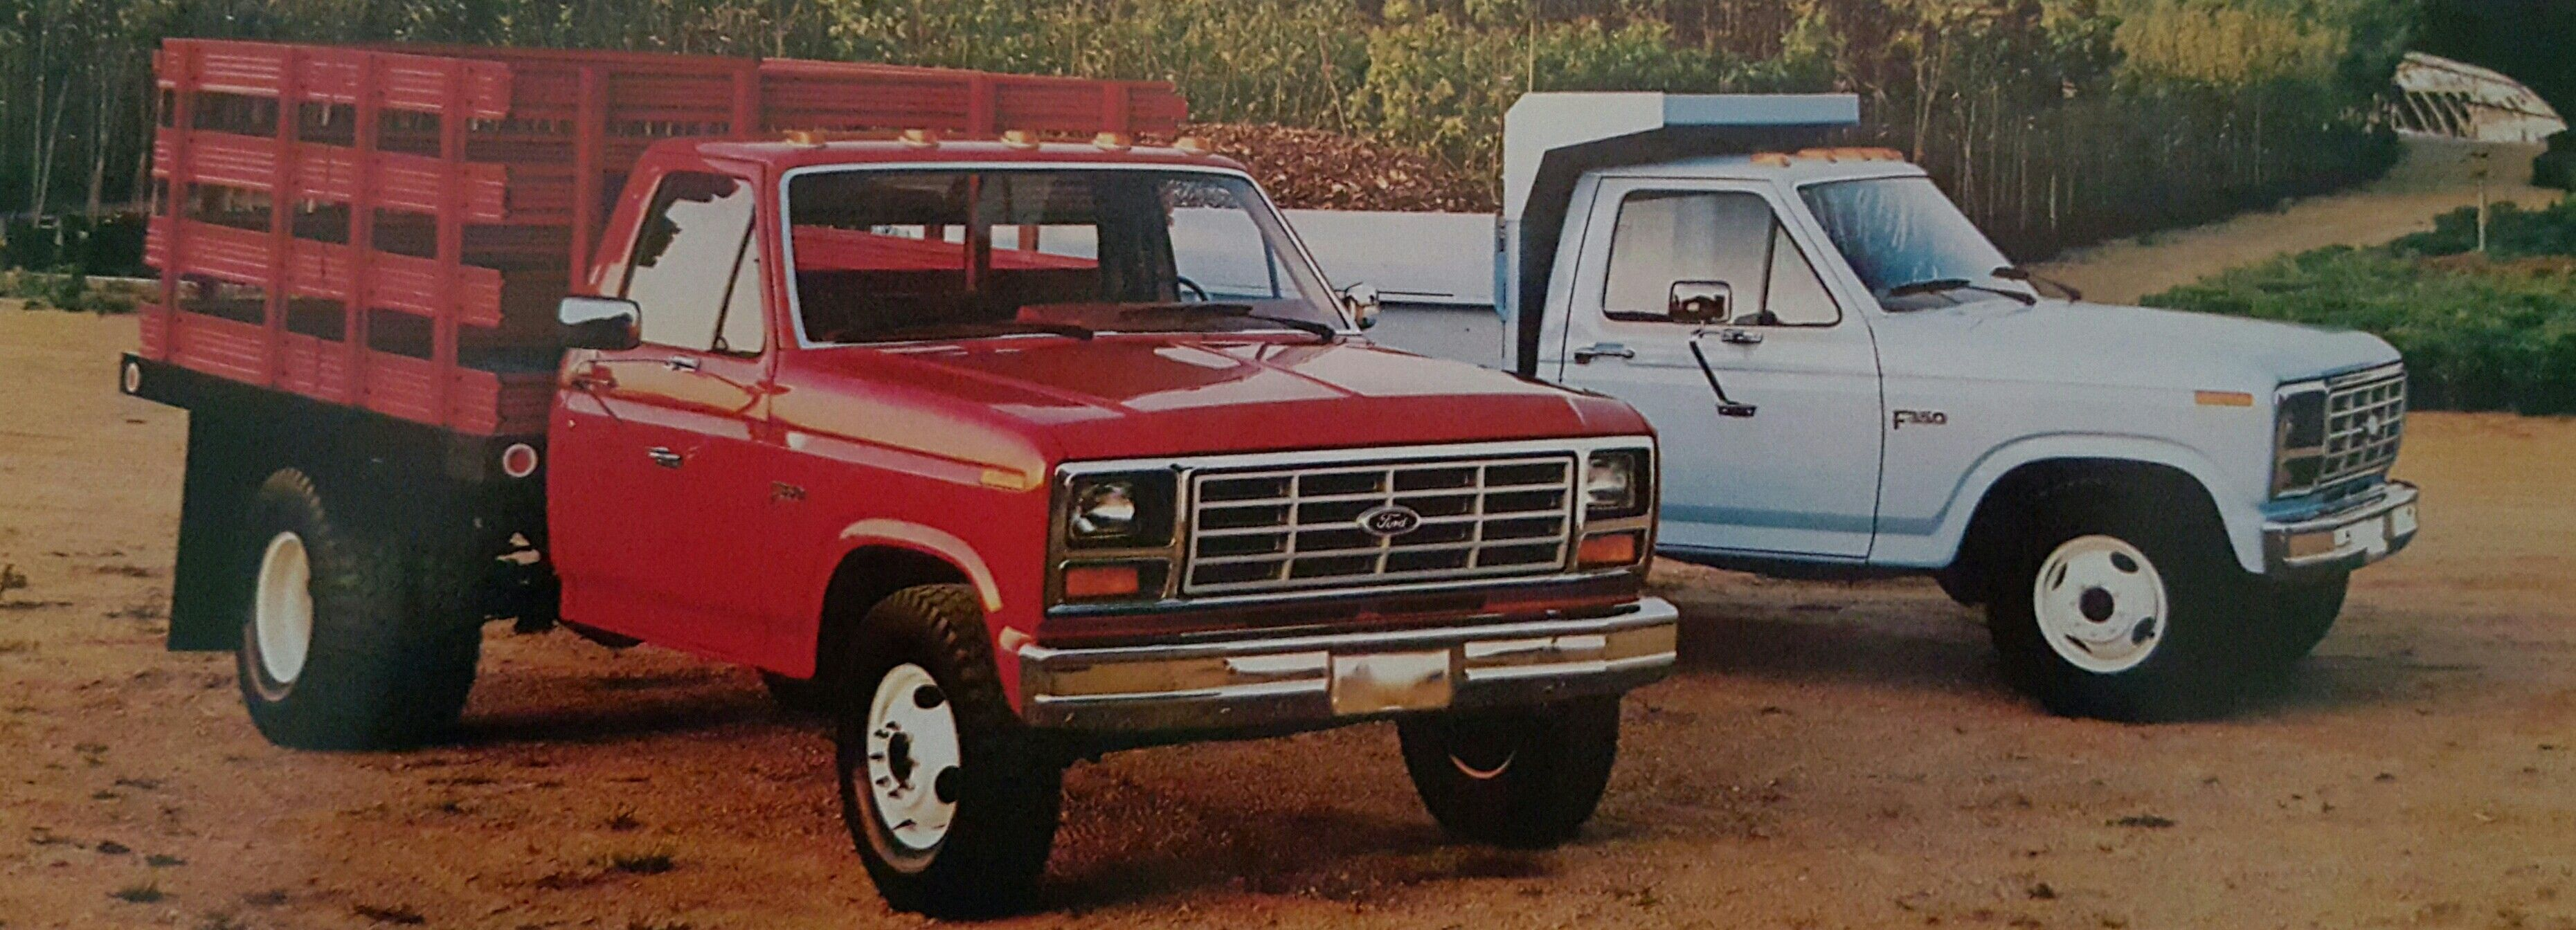 1984 ford f350 chassis cab